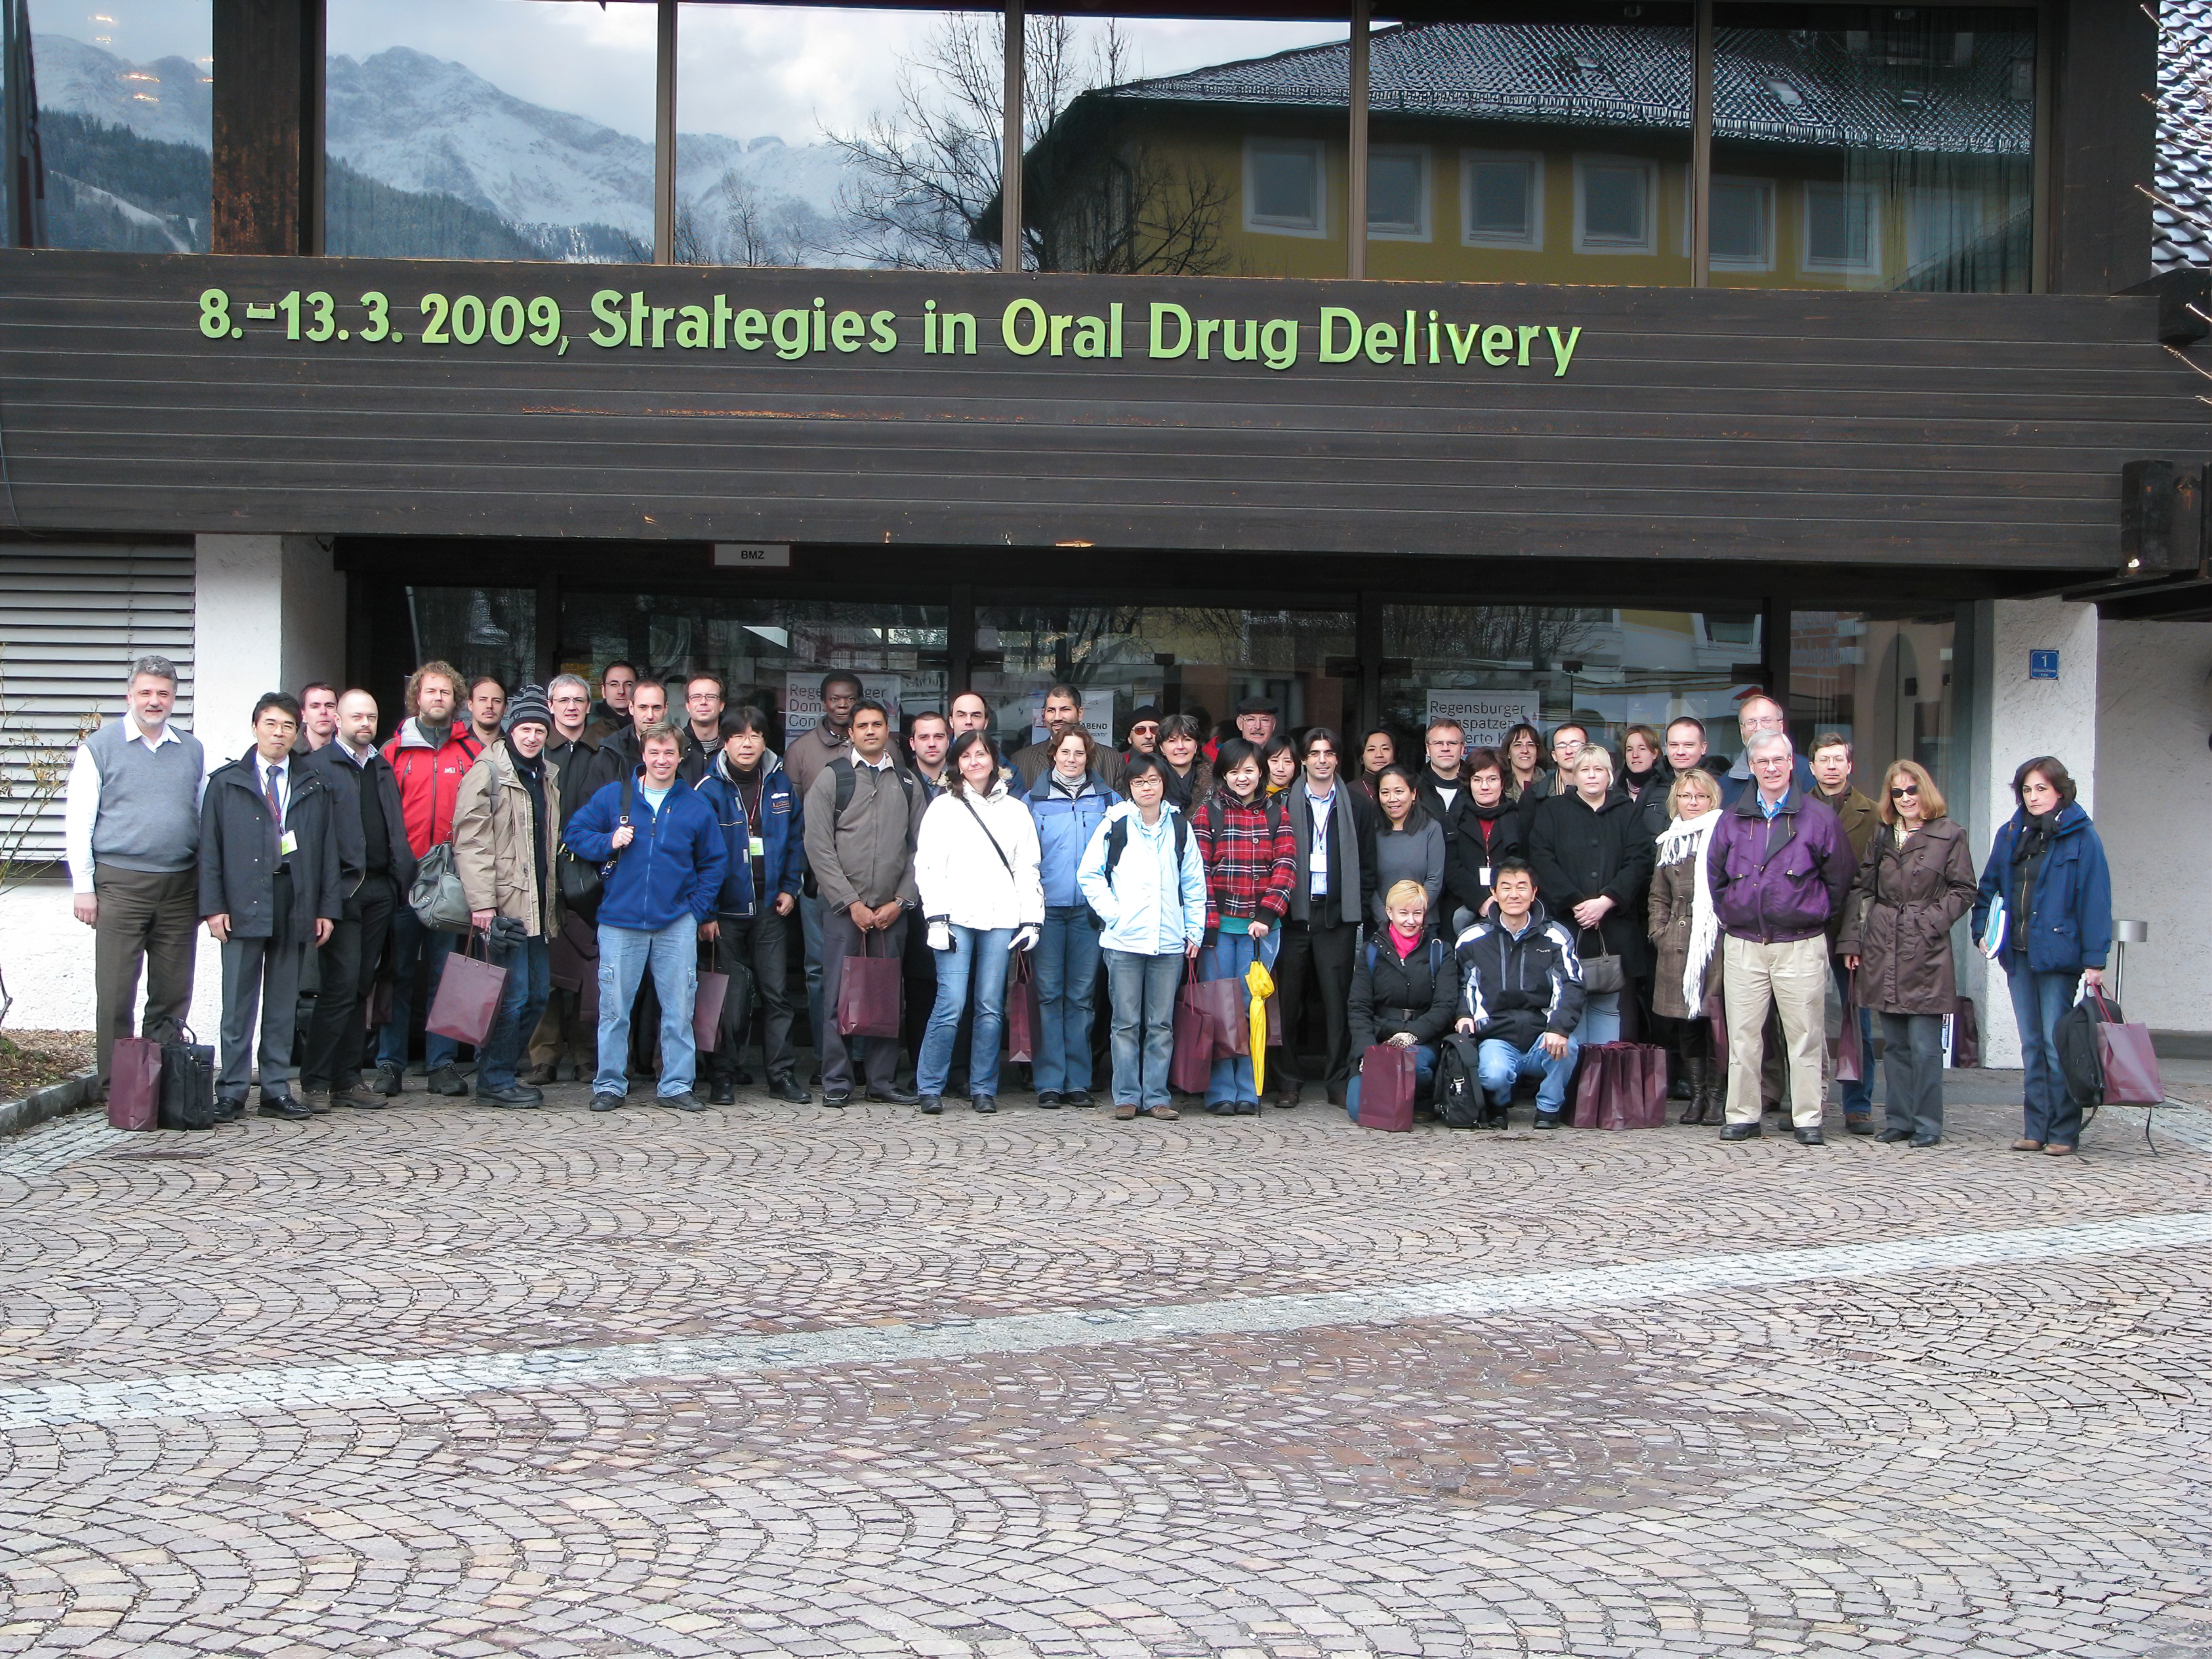 The Oral Drug Delivery Conference, taken in Germany in 2009